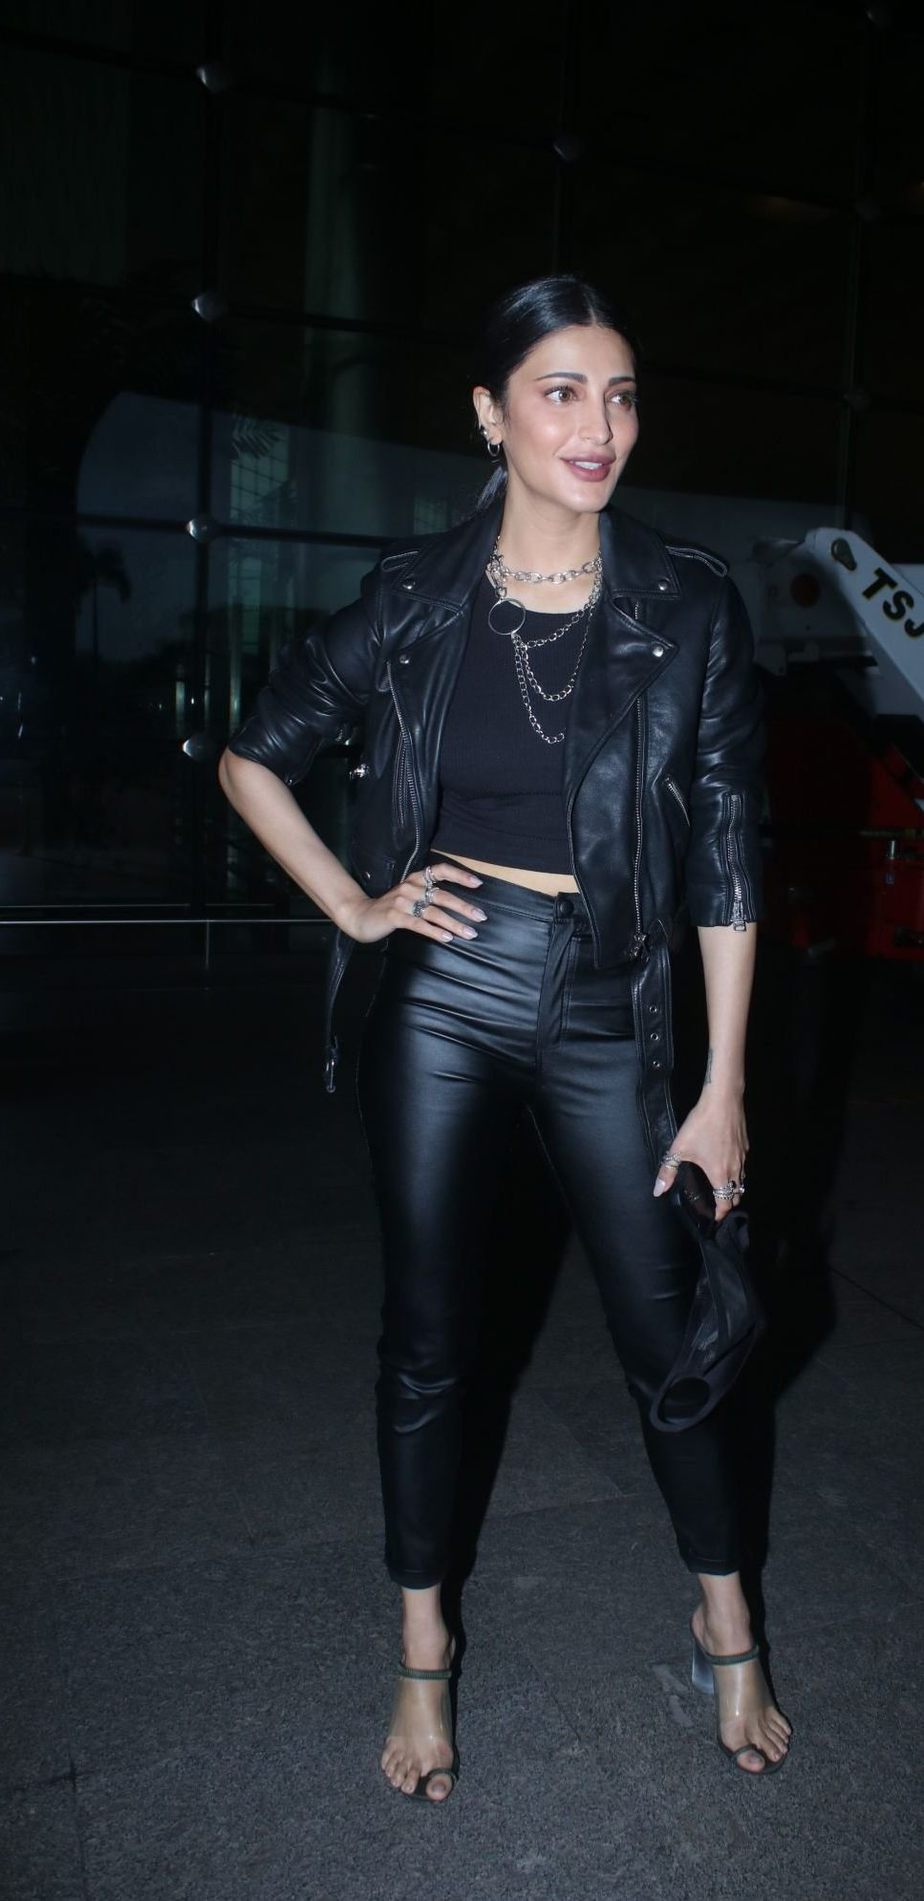 Shruti Hassan in black leather outfit at the airport-3